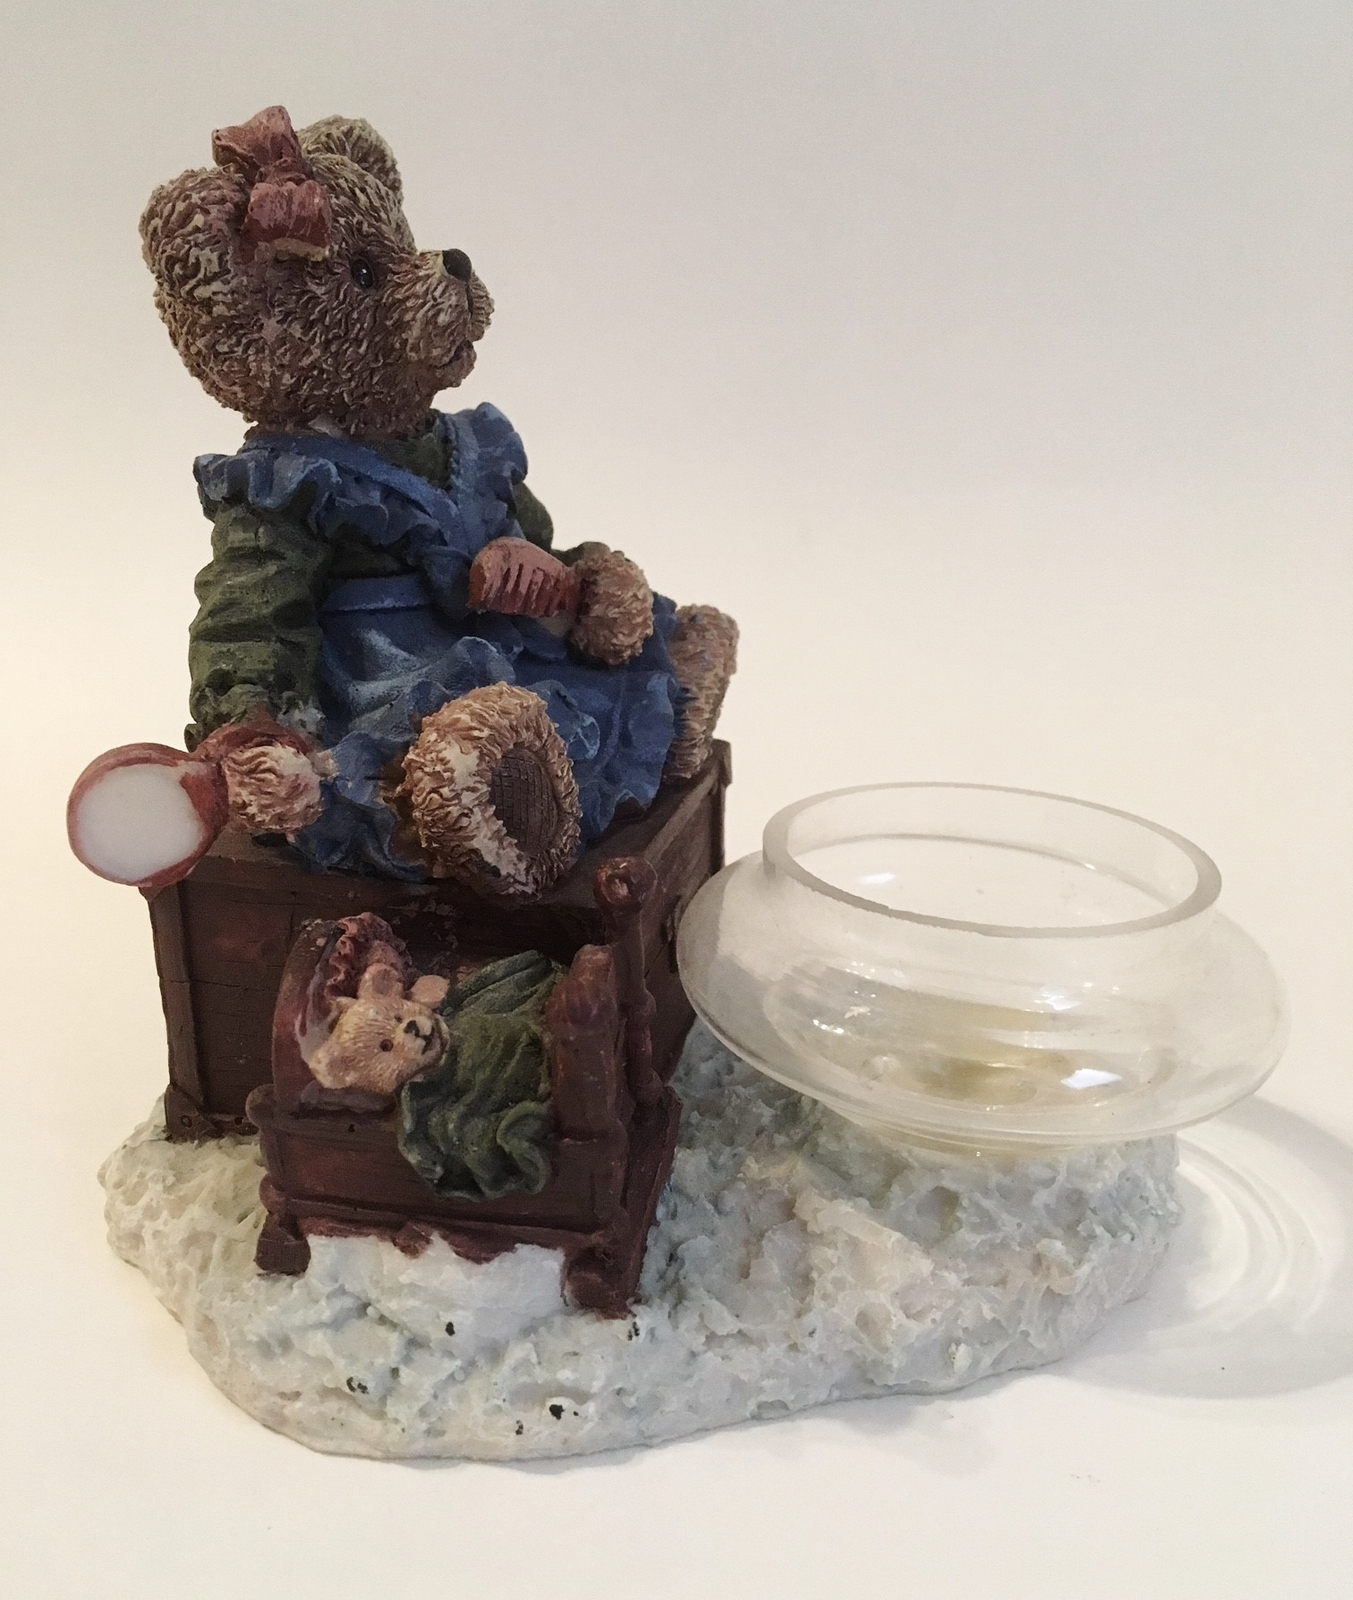 Mama & Baby Teddy Bear Tea Light Candle Holder Blue Green Brown Home Decor Cute